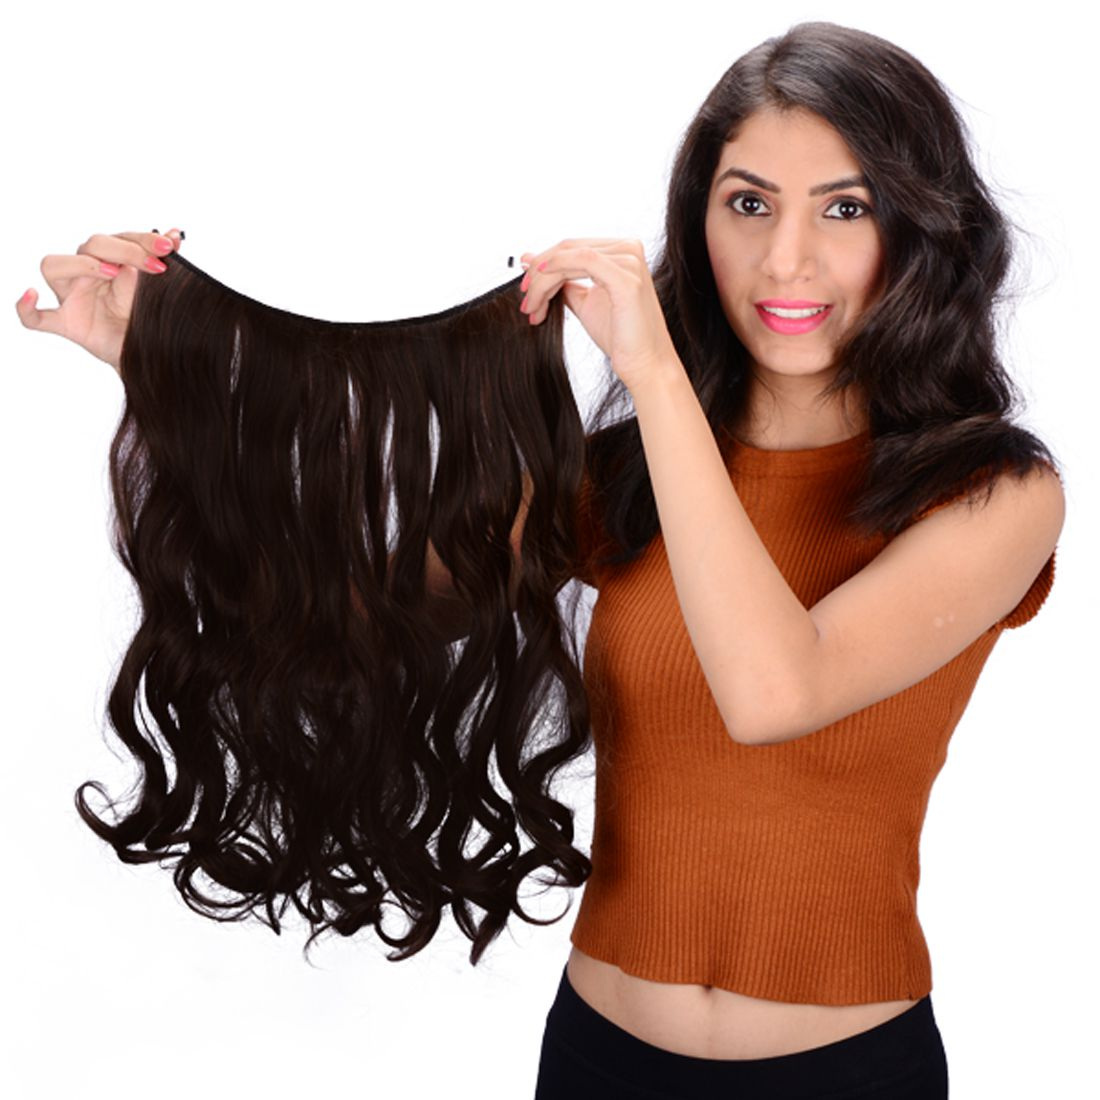 Anand India Kami Hair Extensions Black Hair Wig Black Buy Anand